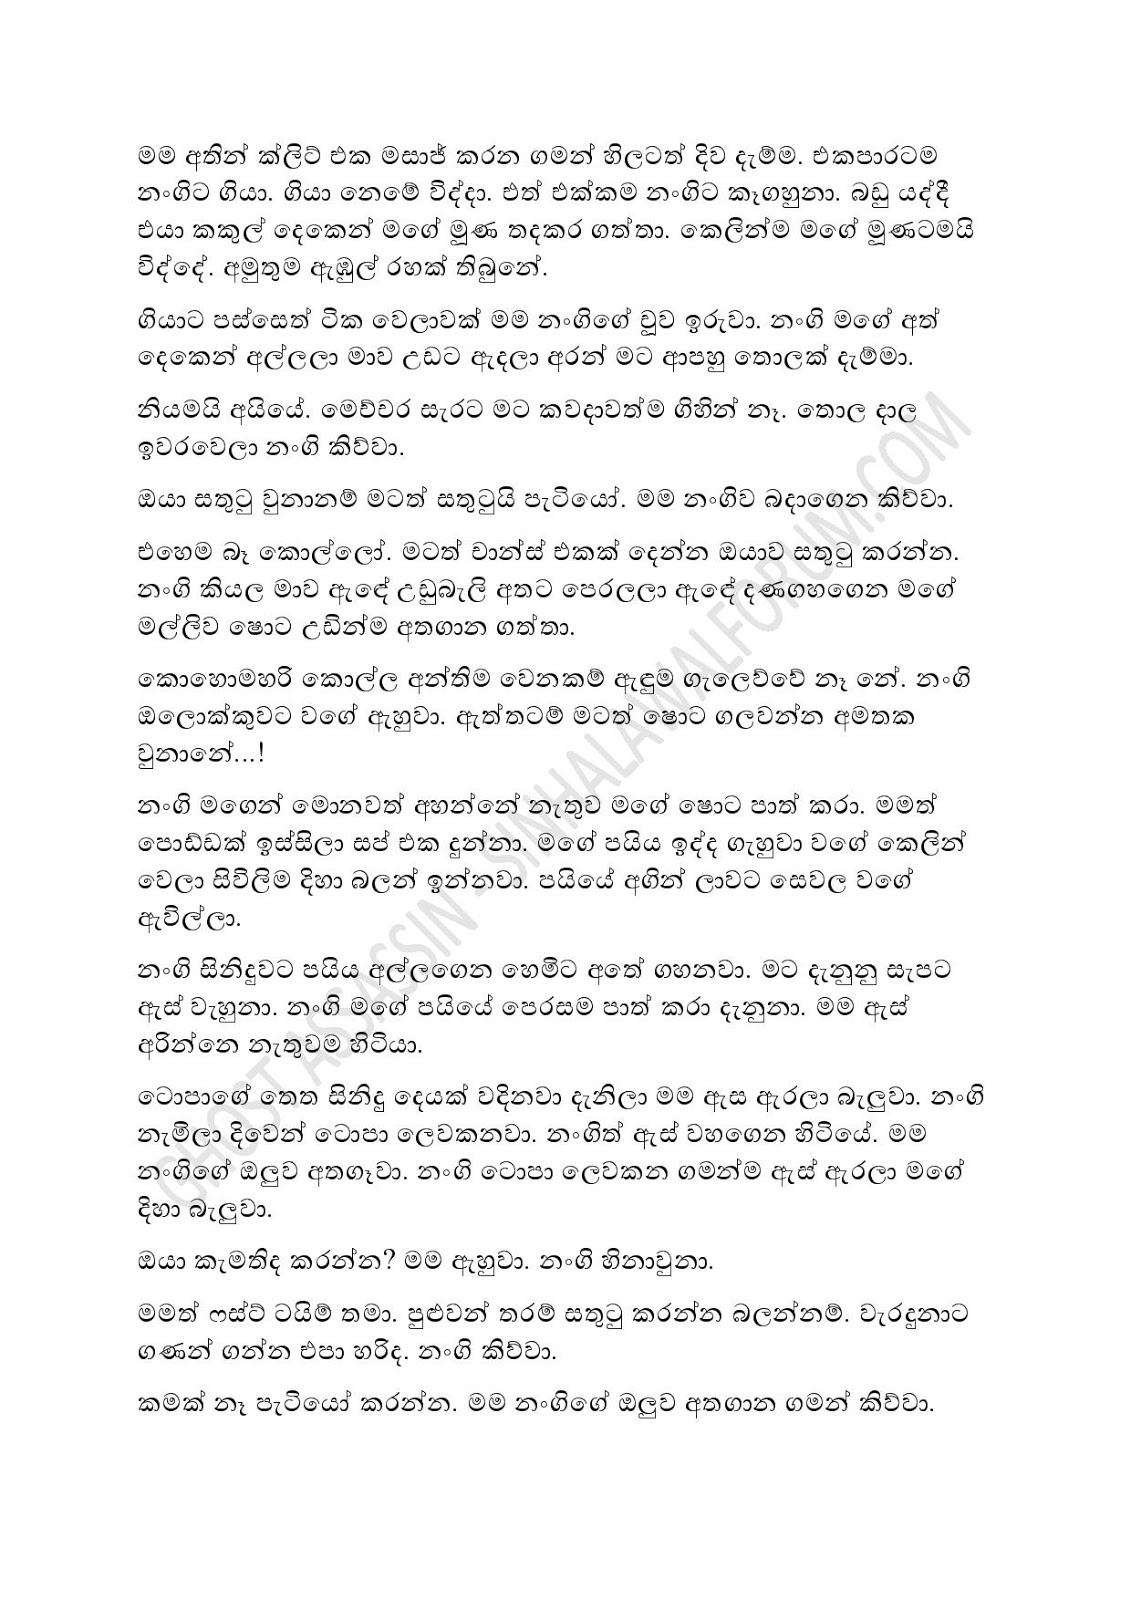 sasrutha sinhala essays Sasrutha sinhala essays about sri astore: lastly, this essay attempted to present why autonomy grounds anarchy and statelessness, so that more people can grow aware.